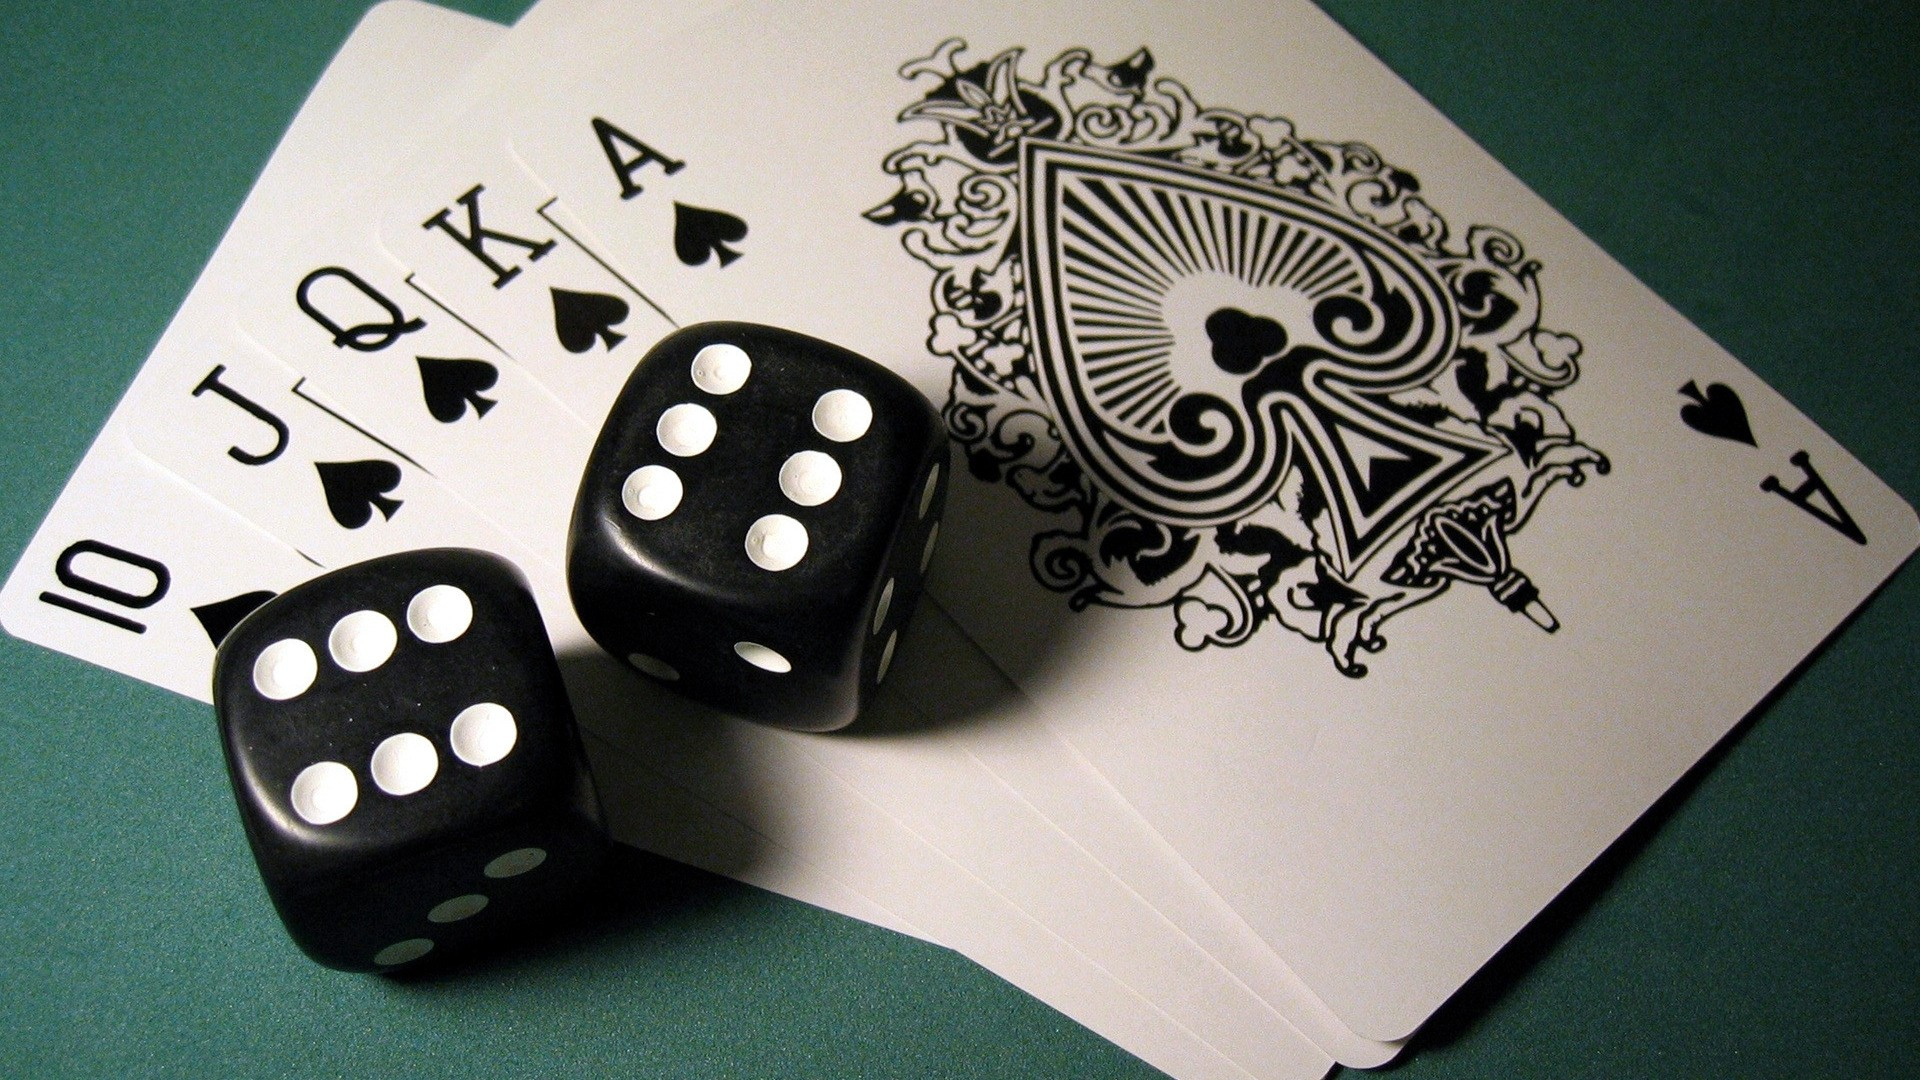 How to play online game easily to make profit?